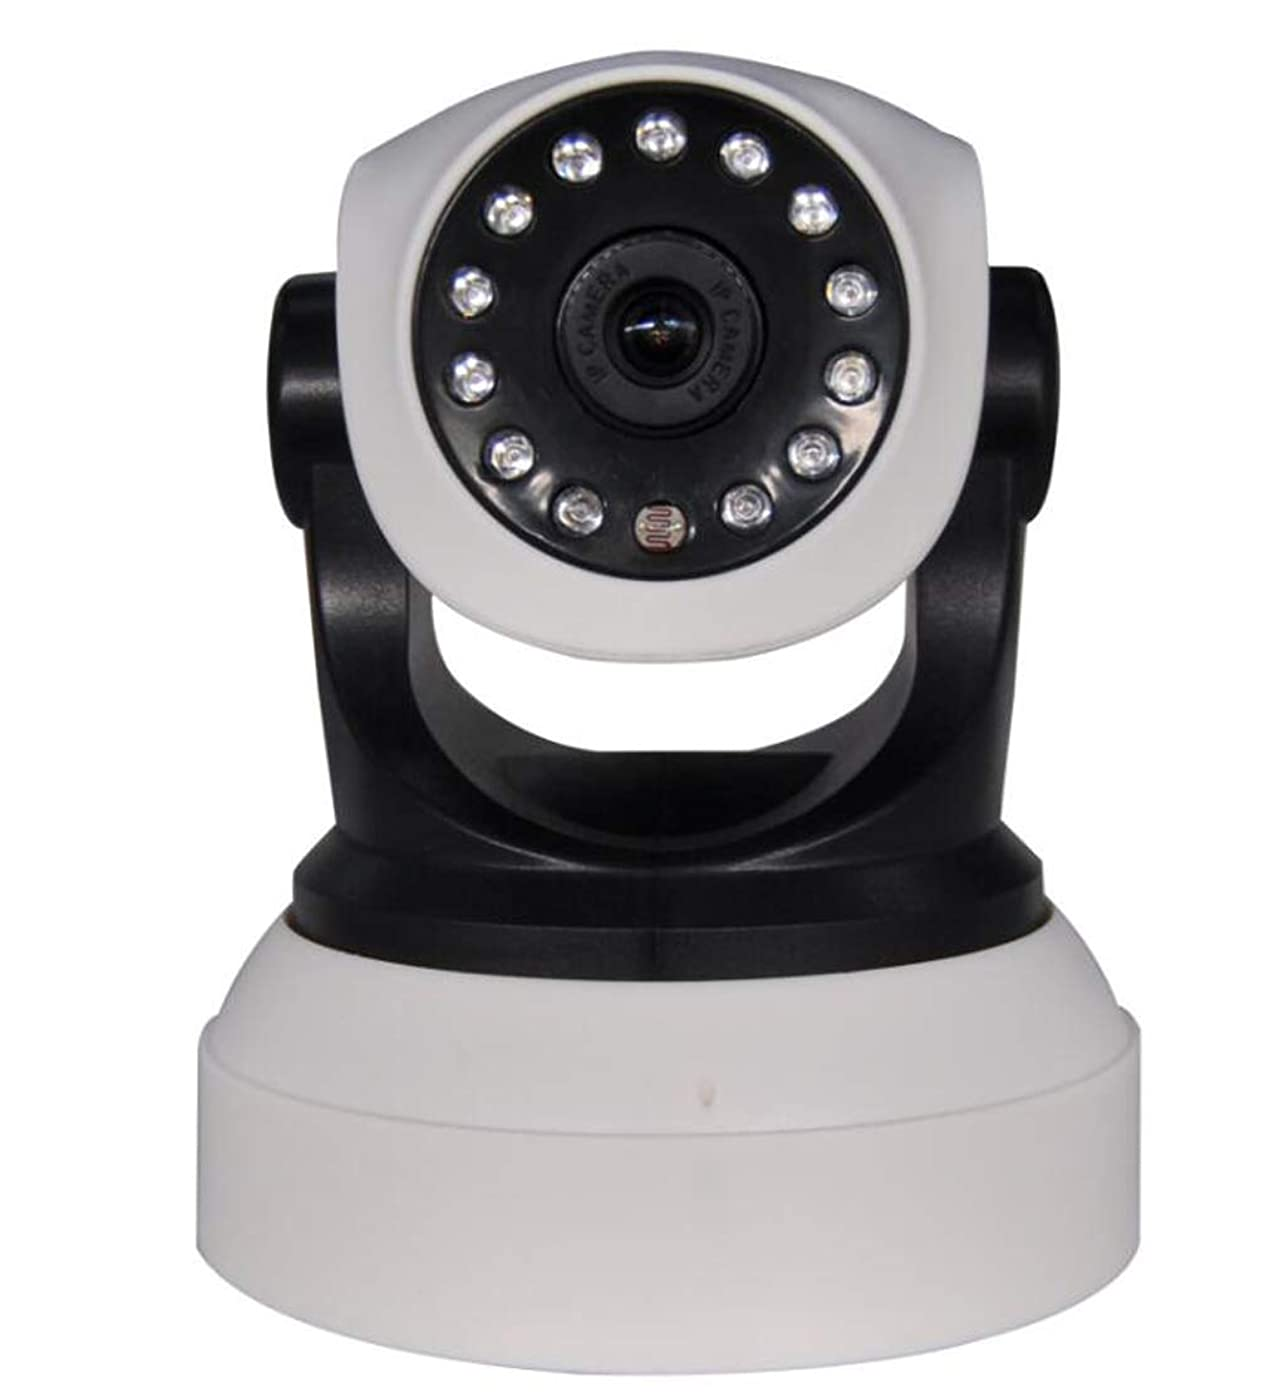 Yuwen 720P HD WiFi IP Camera Monitoring Security System T Remote Motion Detection Alarm, Wireless Indoor Camera Supports Two-Way Audio 64GB Micro SD